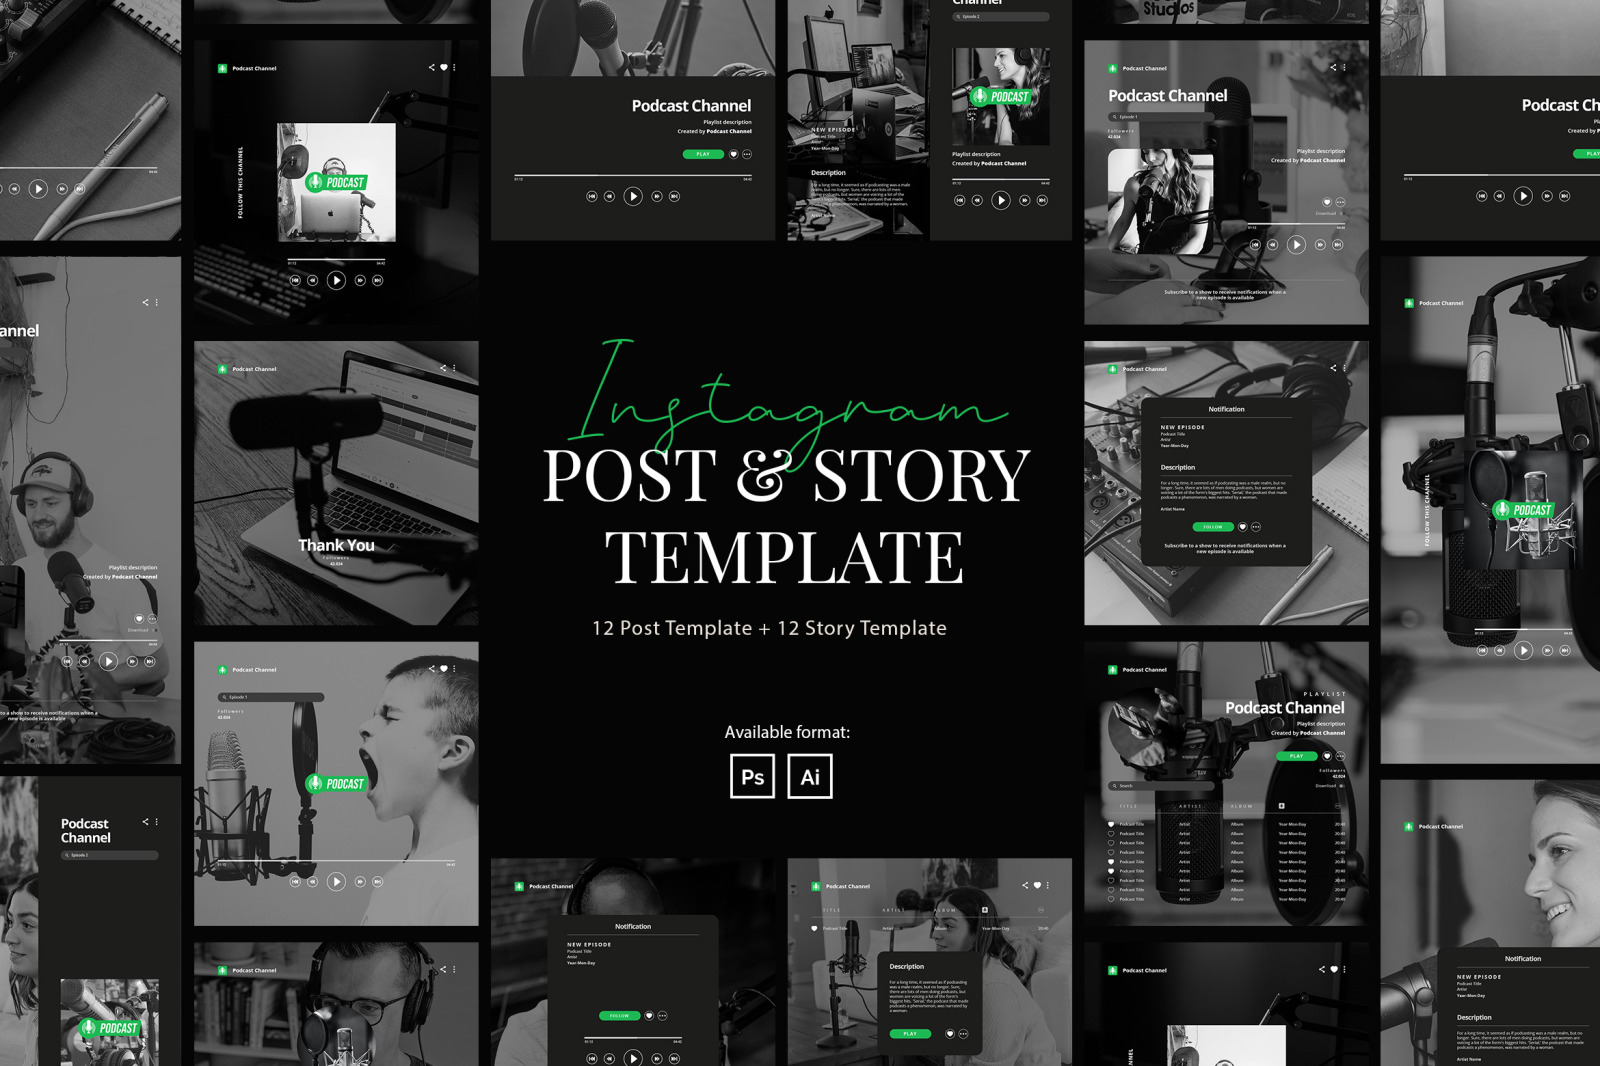 Podcast Instagram Post and Story Template